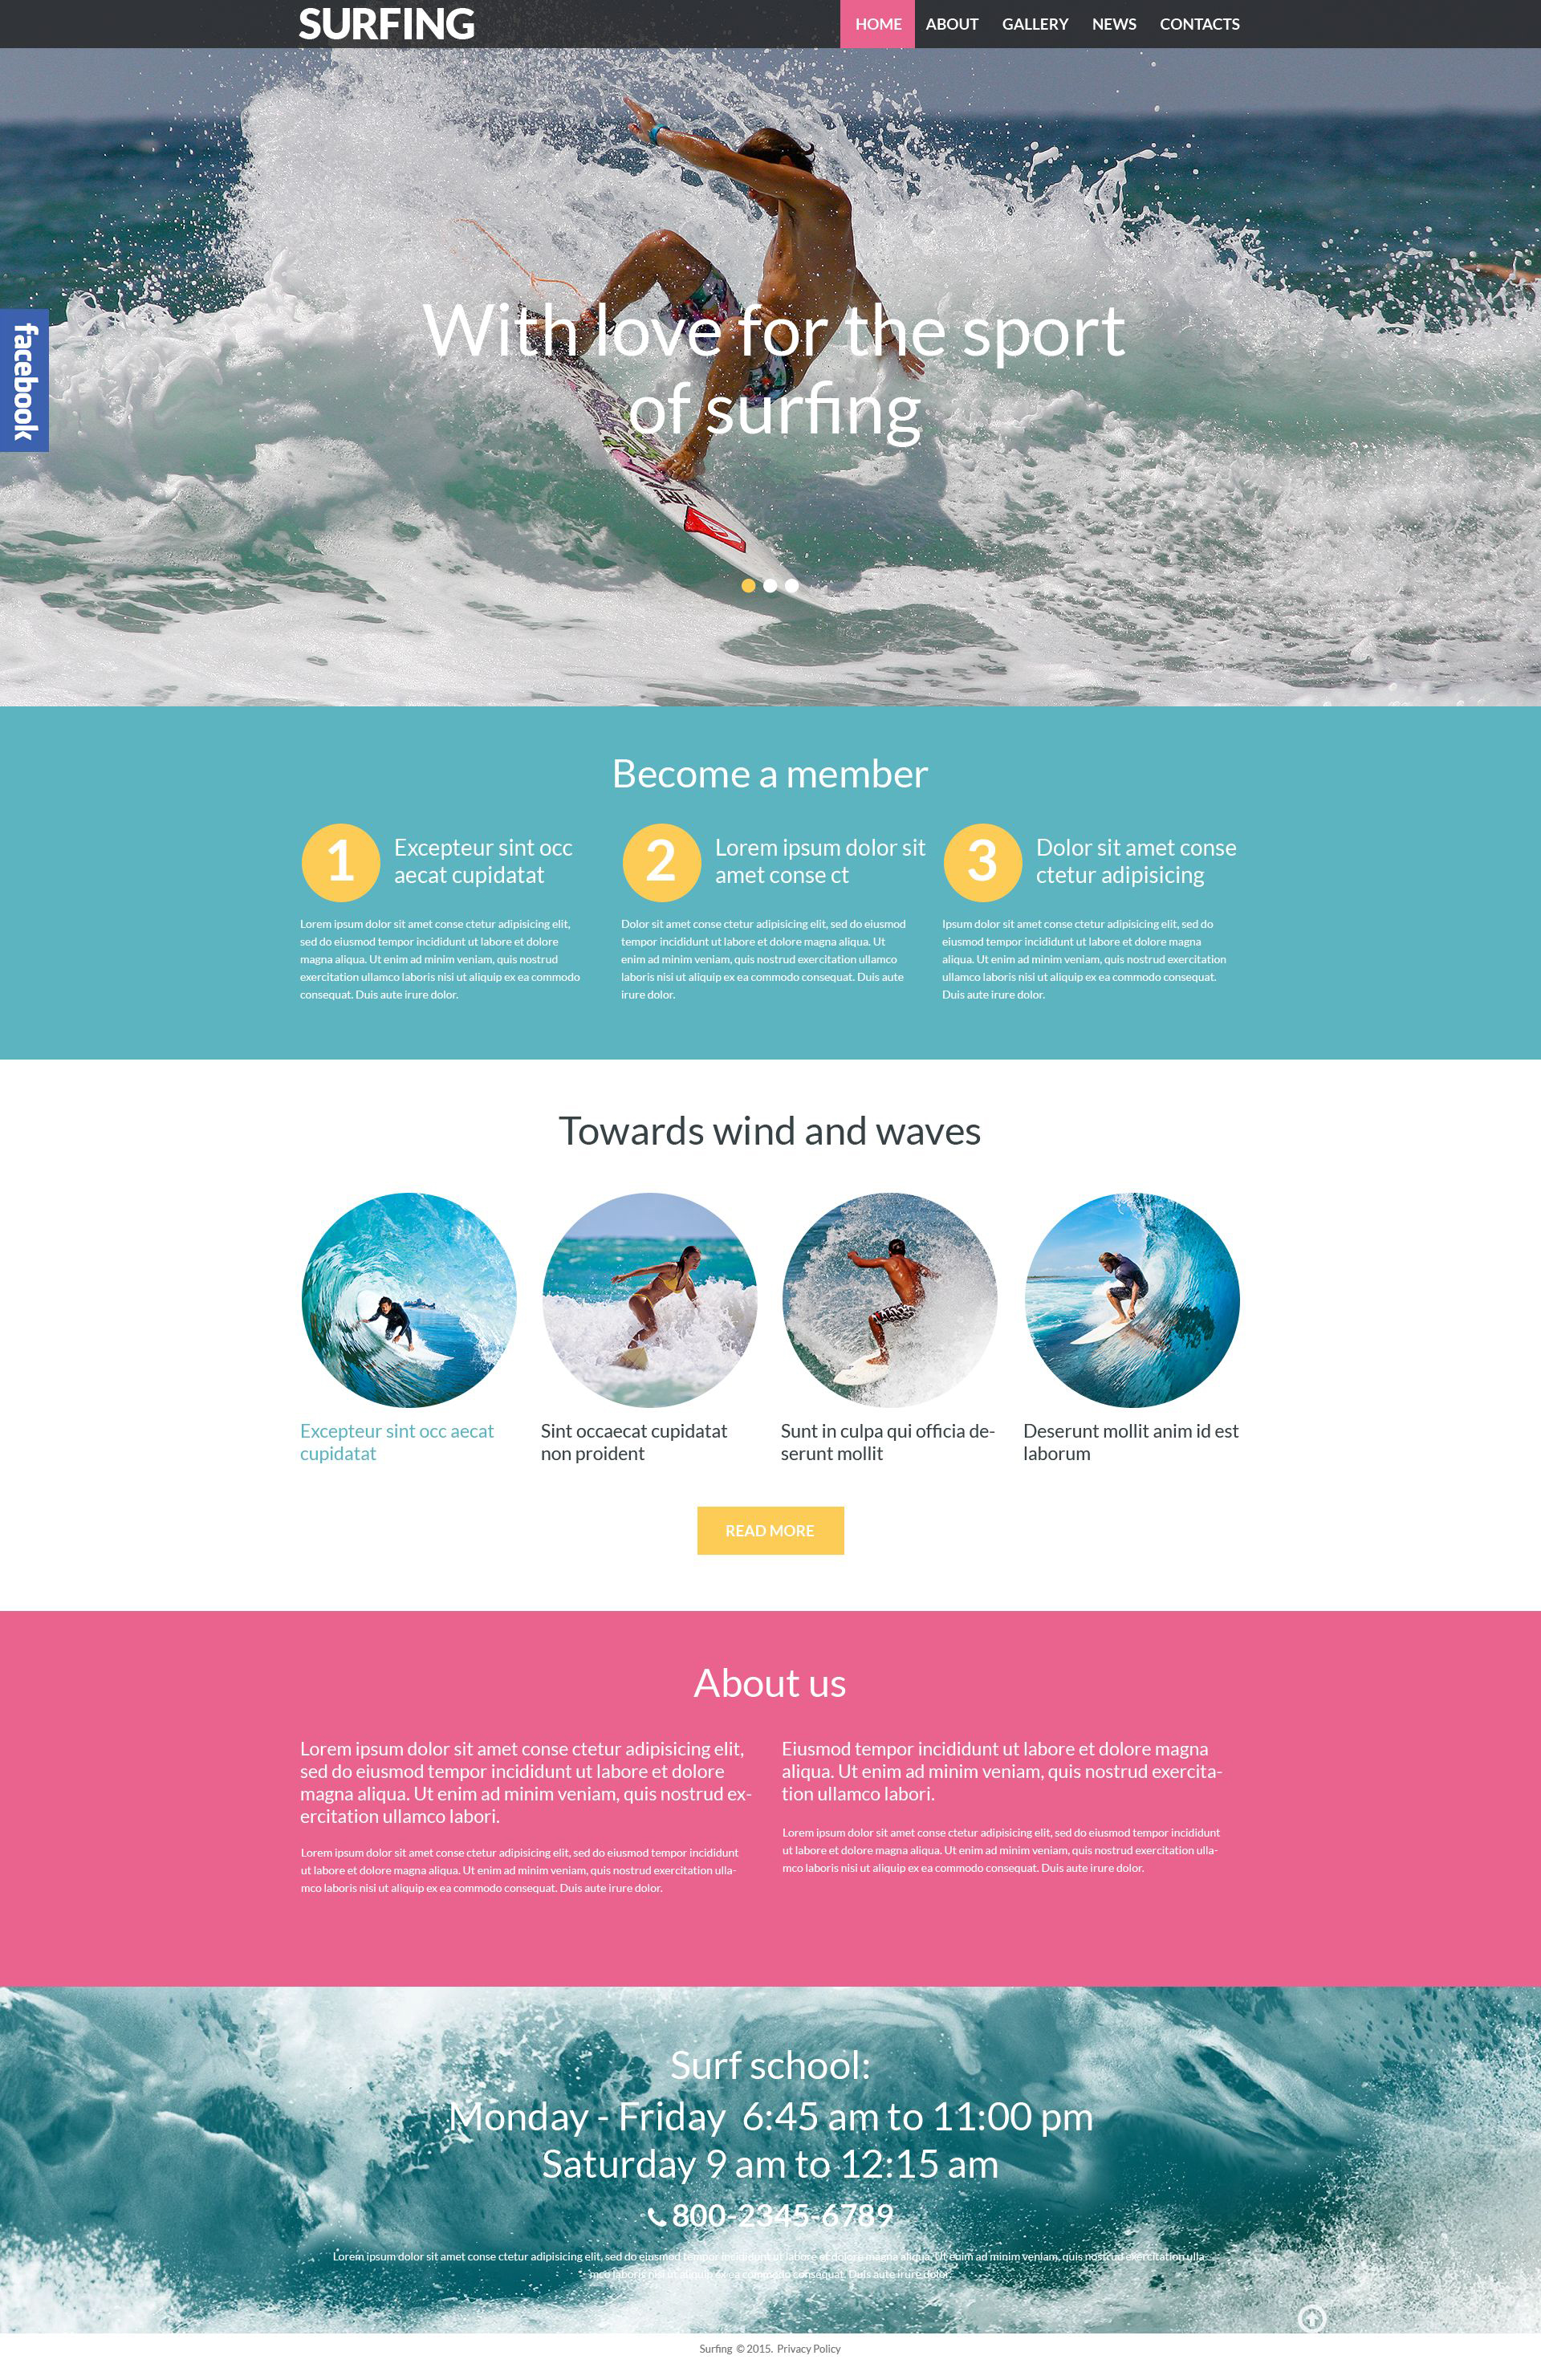 The Surfing Club WordPress Design 53989, one of the best WordPress themes of its kind (sport, most popular), also known as surfing club WordPress template, sport WordPress template, sea WordPress template, ocean WordPress template, surf-riding WordPress template, board WordPress template, team WordPress template, shop WordPress template, products WordPress template, gallery WordPress template, surf school WordPress template, teachers WordPress template, programs and related with surfing club, sport, sea, ocean, surf-riding, board, team, shop, products, gallery, surf school, teachers, programs, etc.